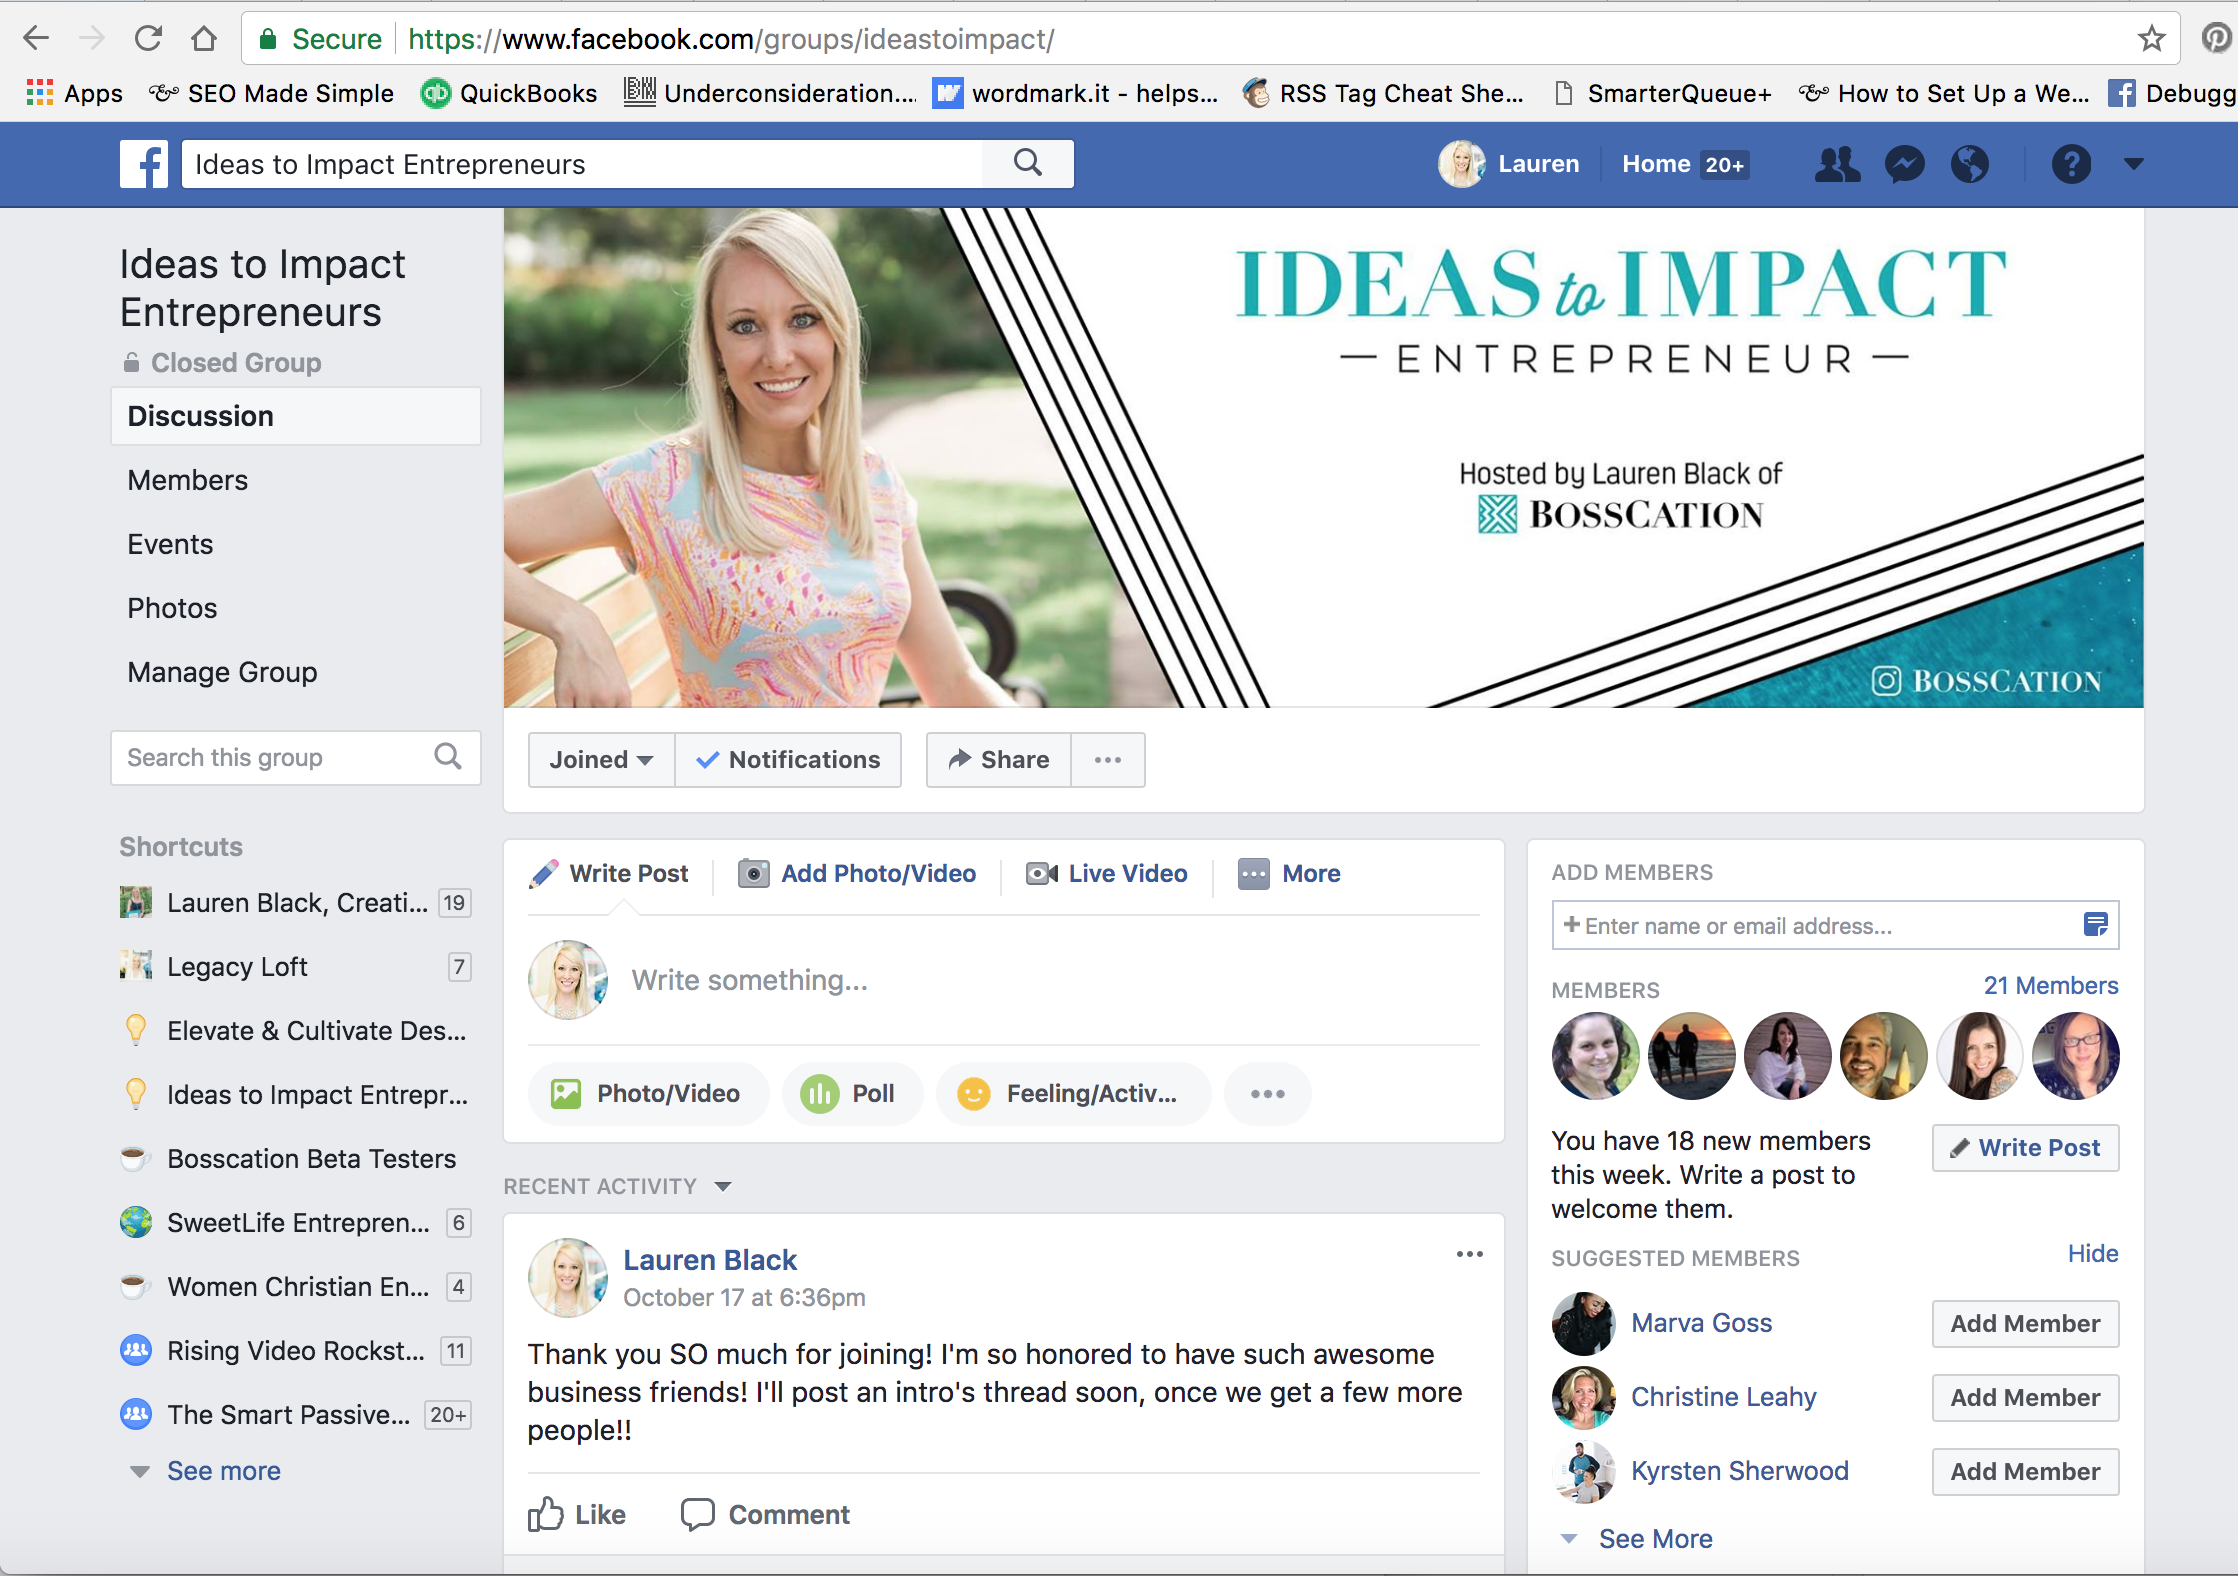 Join the Facebook Group! - Make sure to join us in the Ideas to Impact Entrepreneur Facebook group, to keep up with your new biz besties and follow along with the challenge!